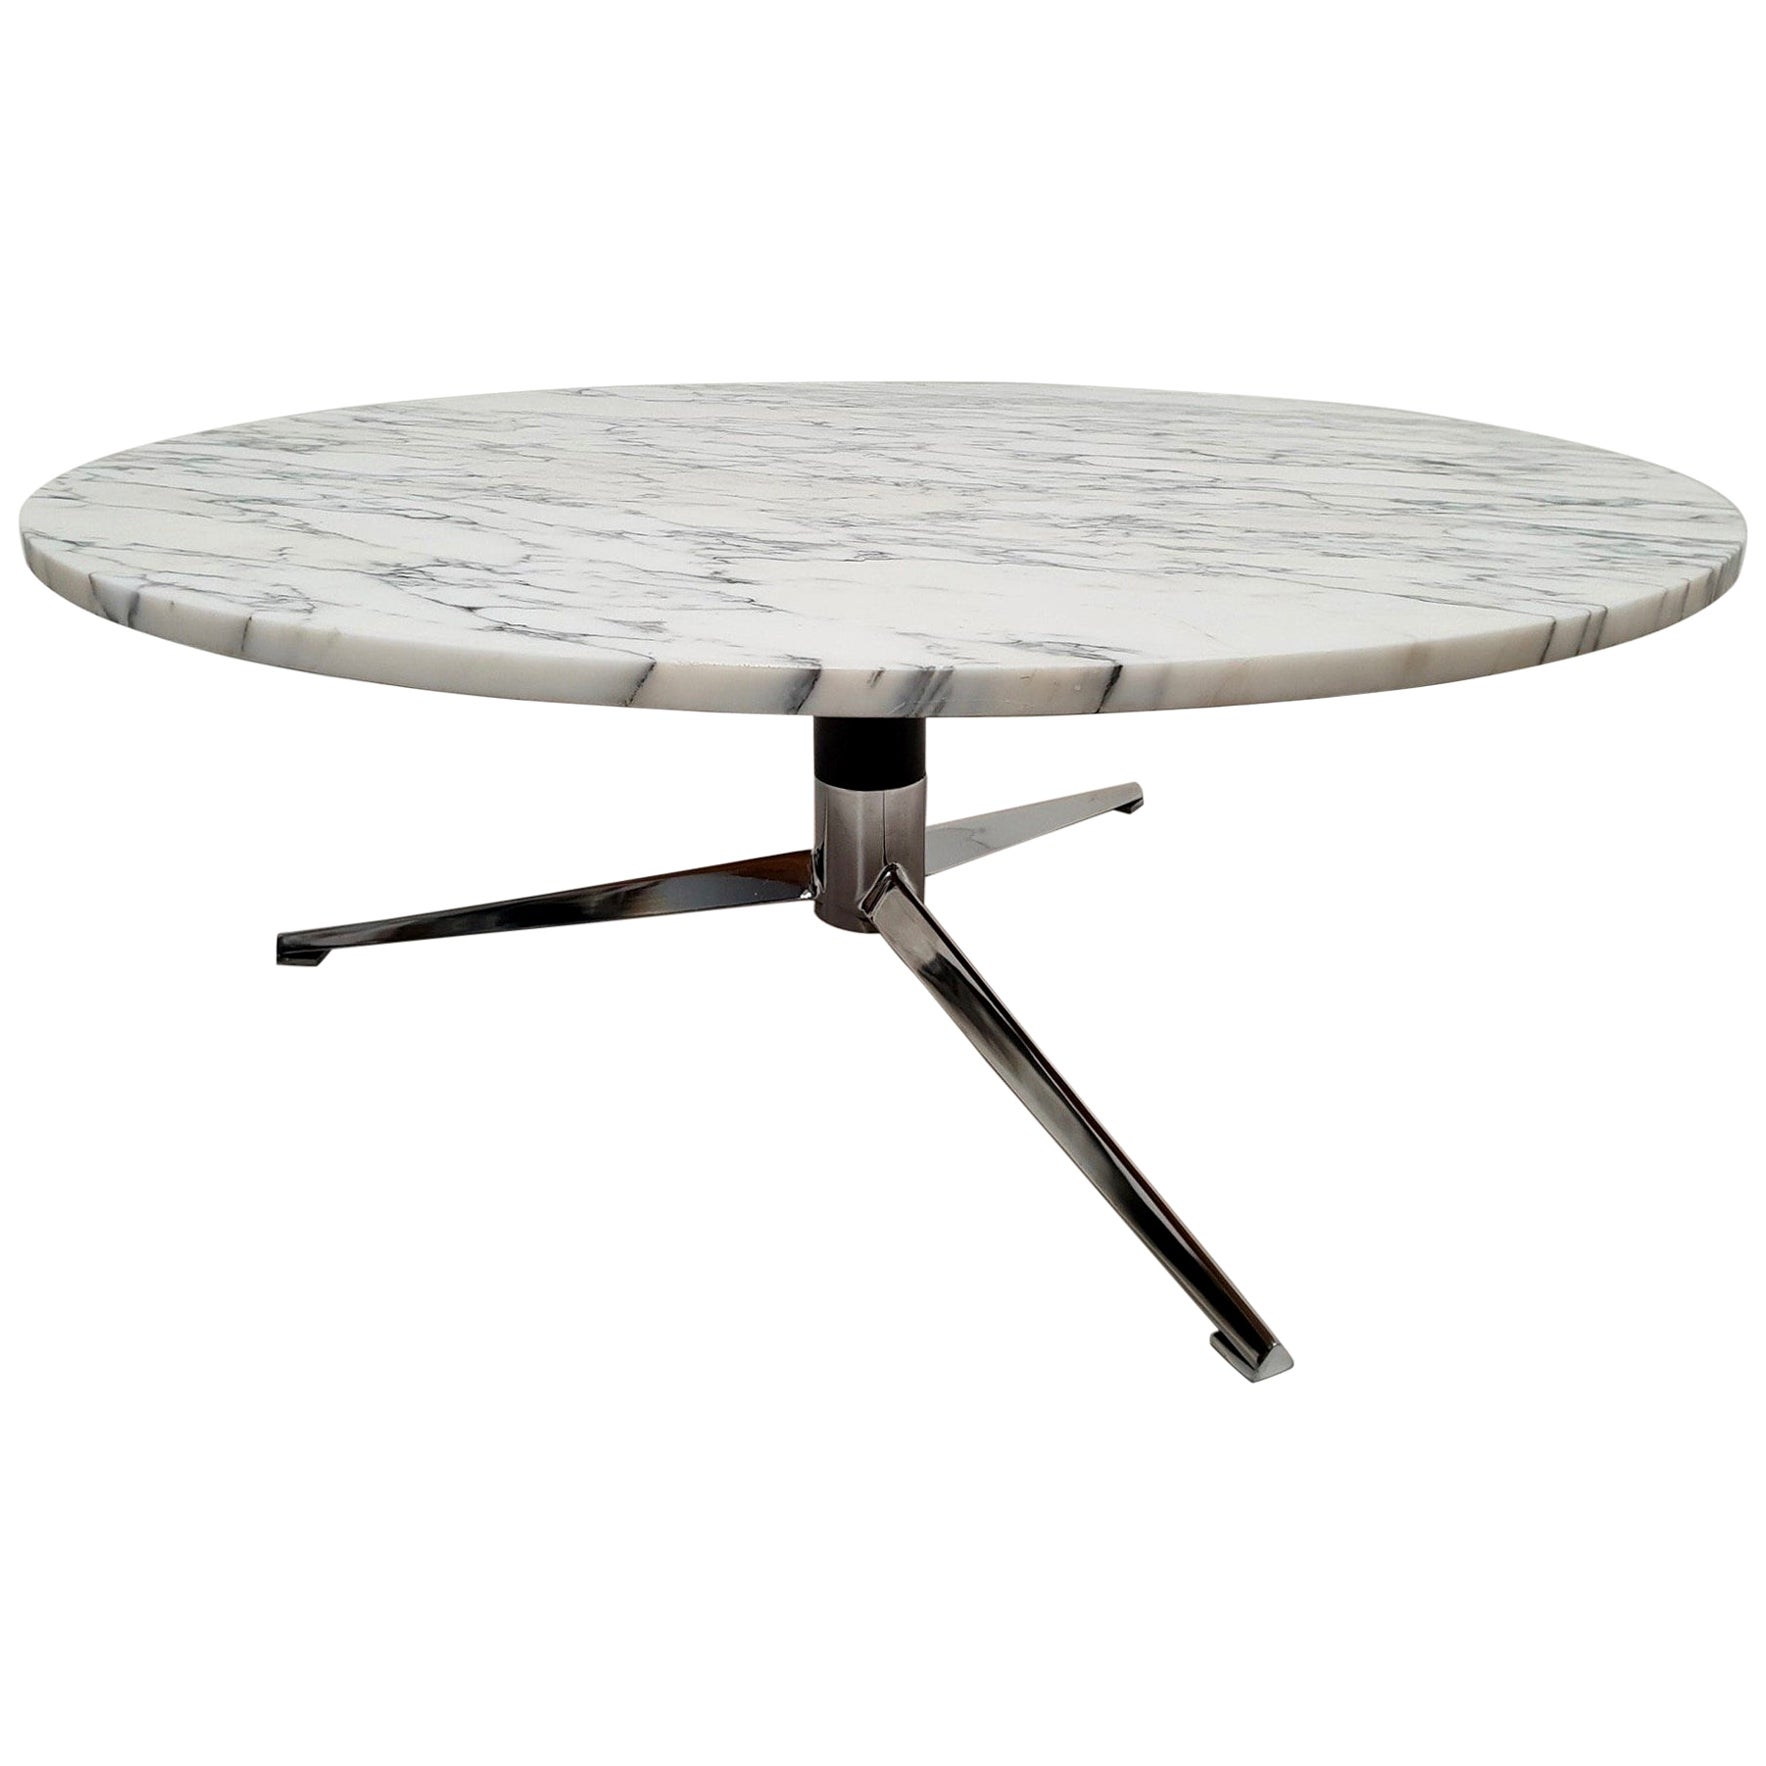 Midcentury Italian Modern Polished Metal and Marble Round Circular Coffee Table